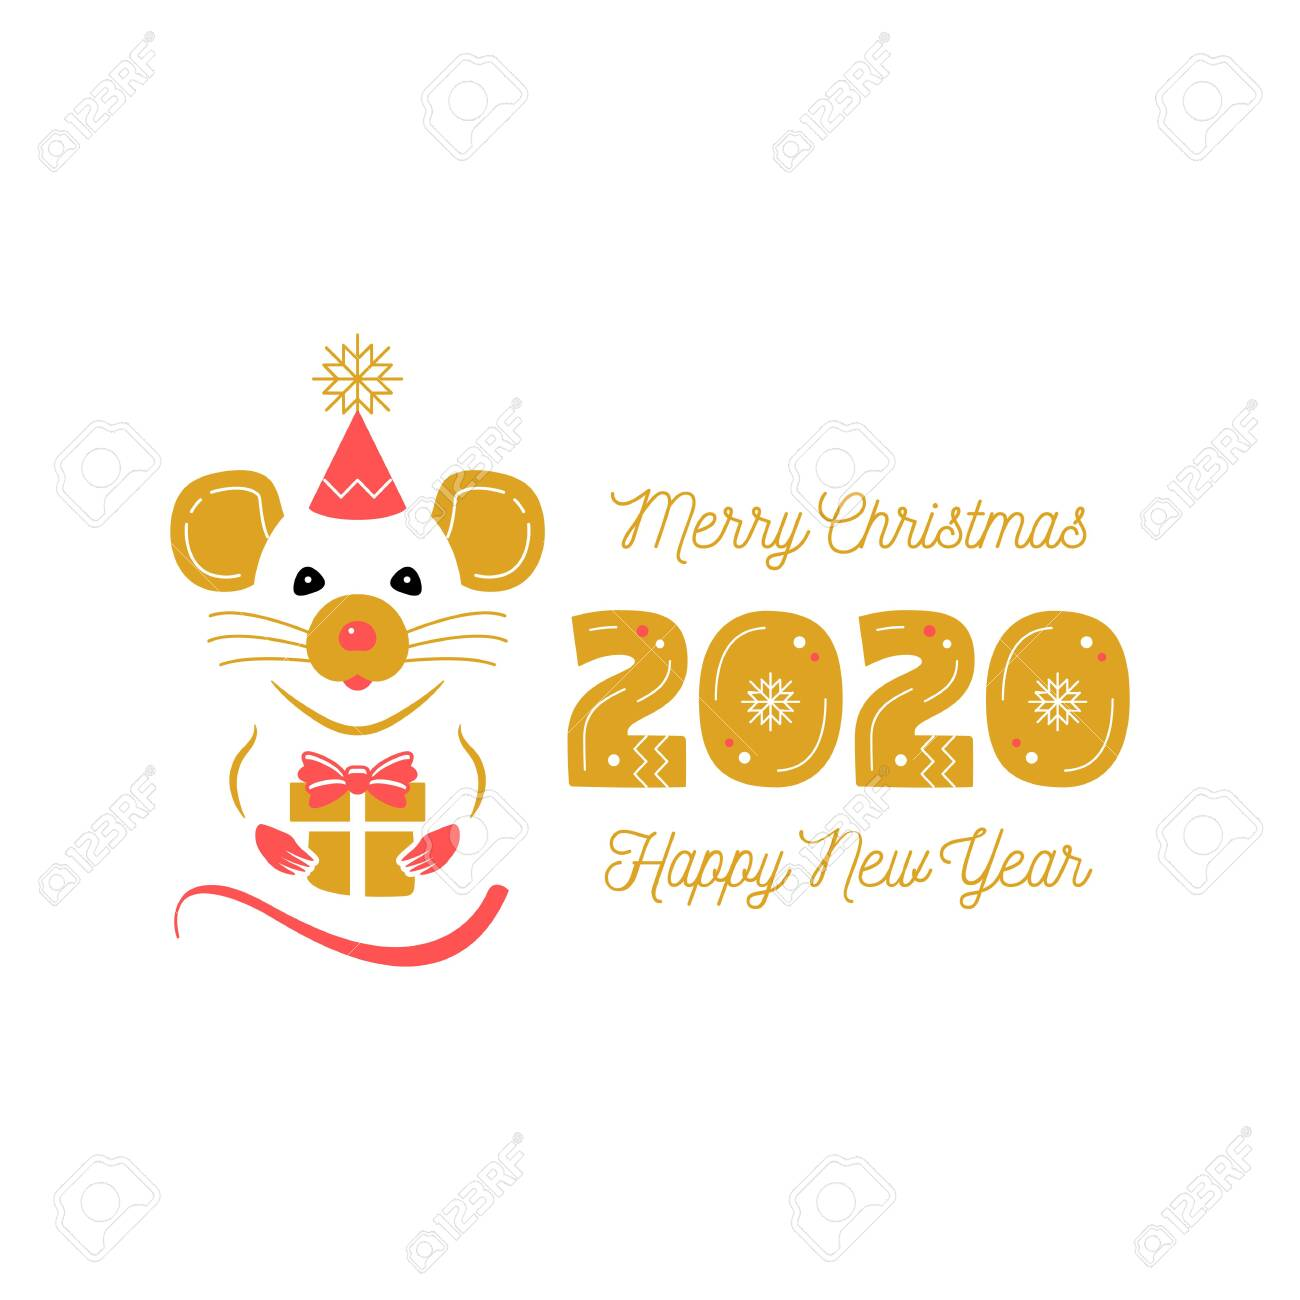 Christmas Card Greetings.Year Of The Rat 2020 Chinese Zodiac Christmas Card And Happy